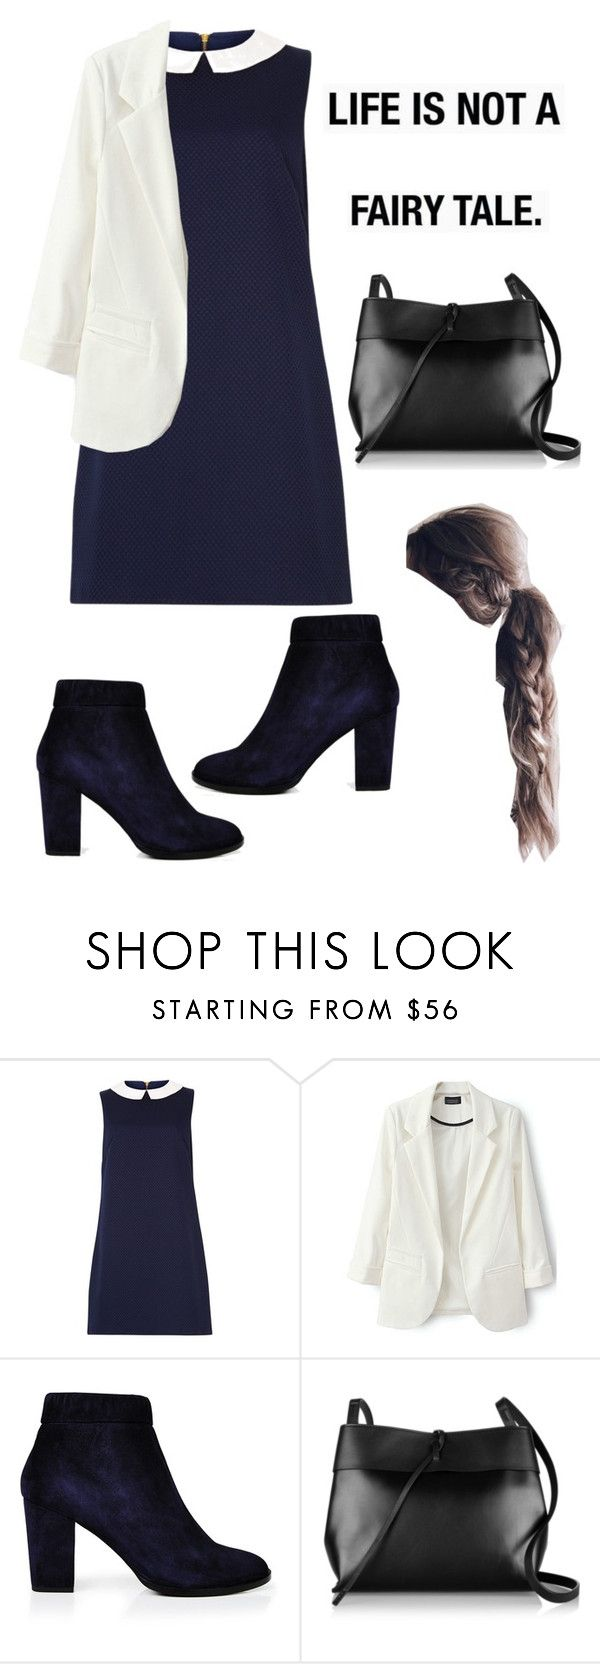 """""""Not all dreams come true"""" by fanan0ndom ❤ liked on Polyvore featuring Sugarhill Boutique, Whistles, Kara, Love Quotes Scarves, women's clothing, women's fashion, women, female, woman and misses"""